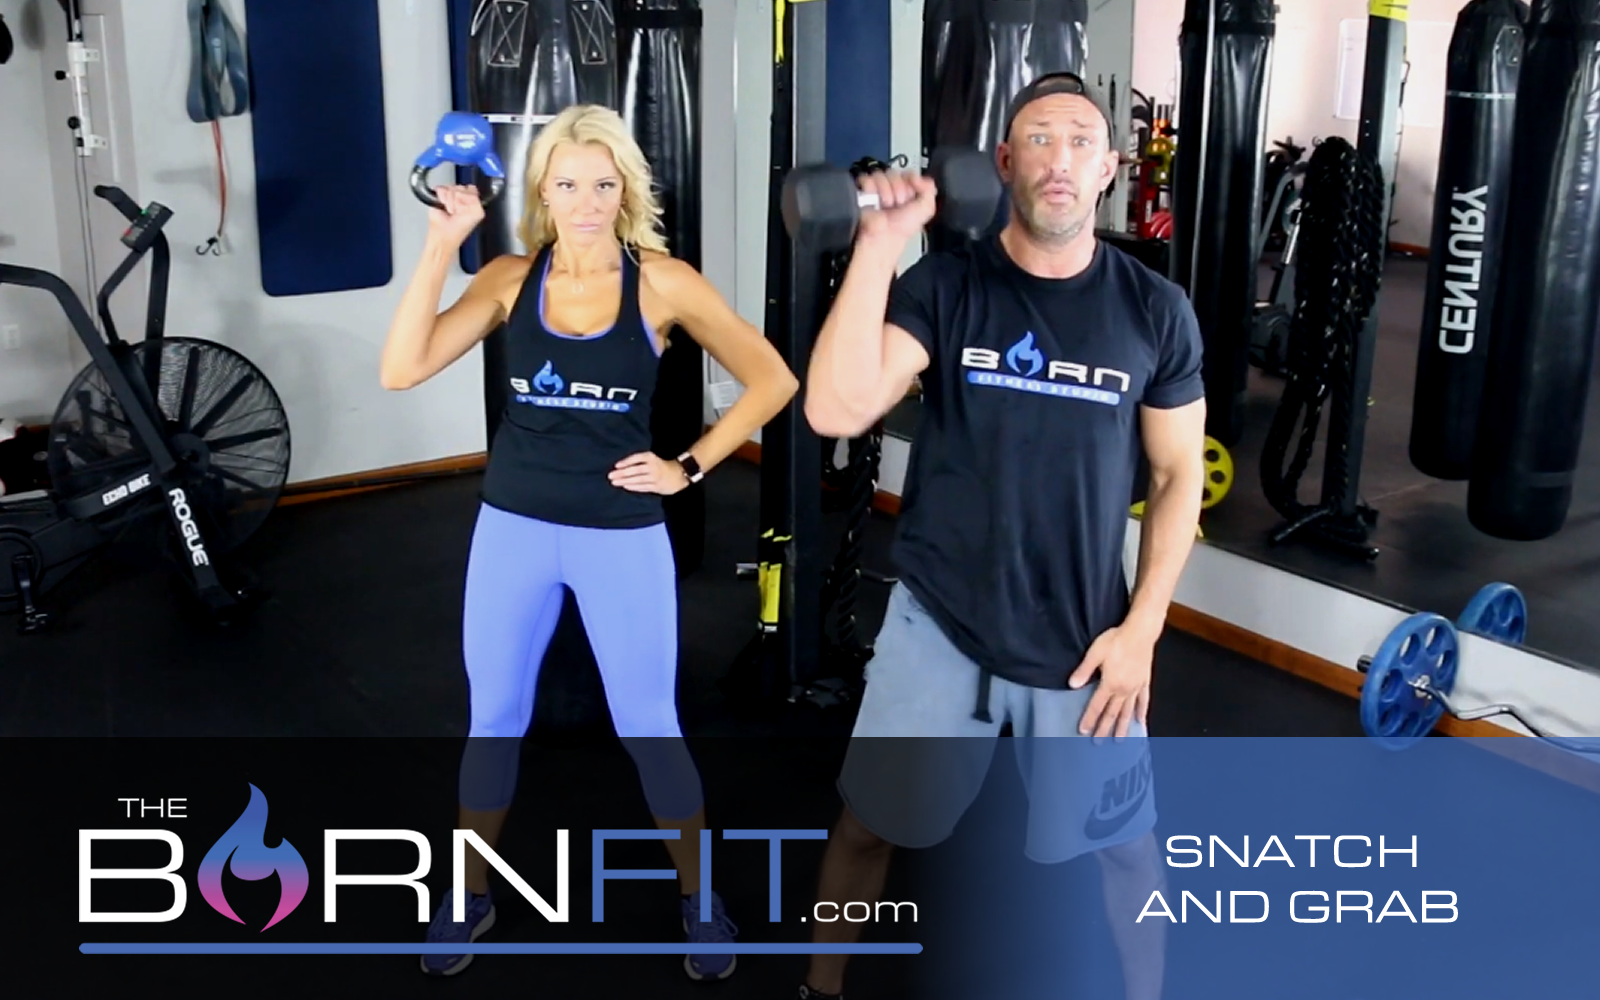 snatch and grab workouts